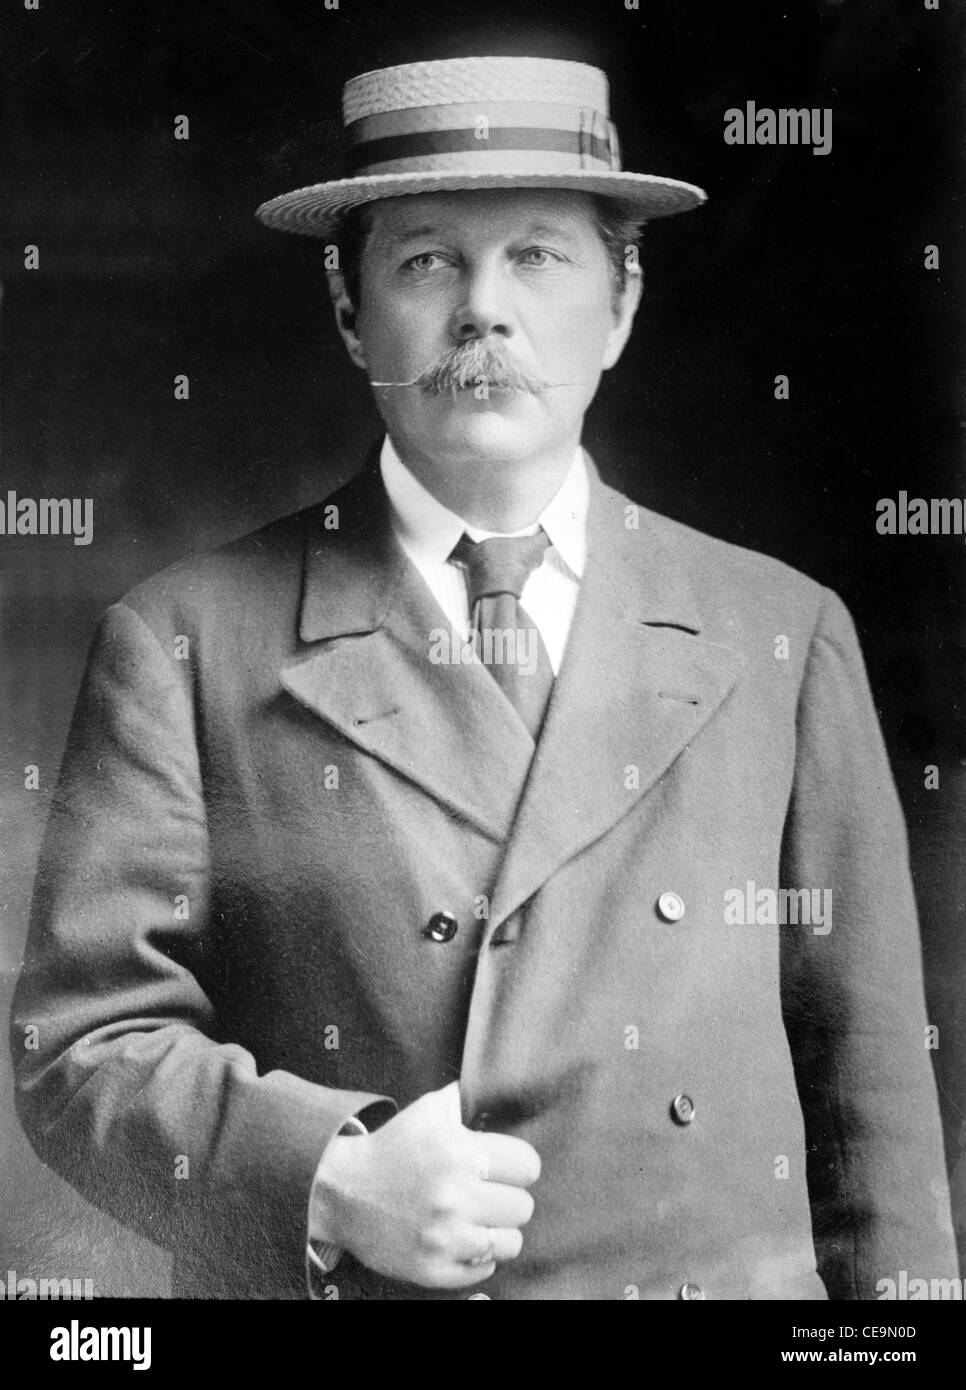 Sir Arthur Conan Doyle, Scottish physician and writer Sir Arthur Conan Doyle - Stock Image